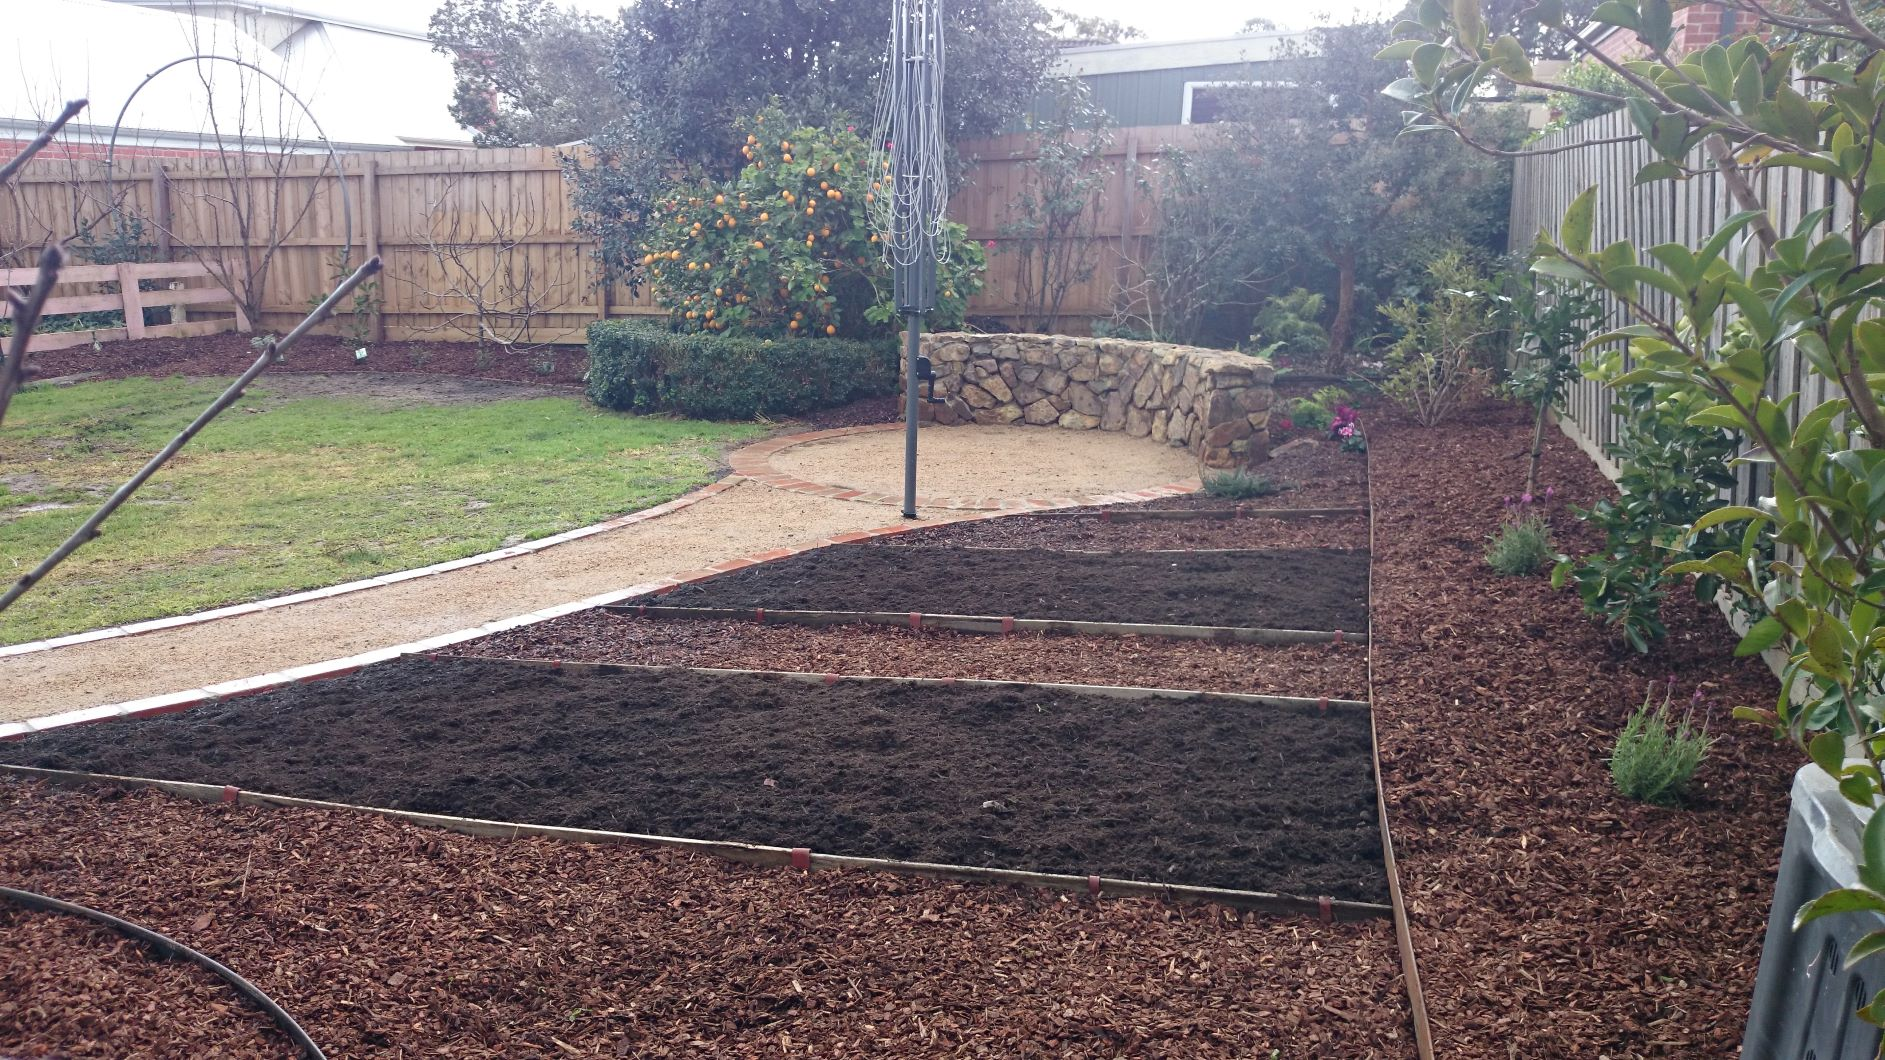 Garden beds, Area for growing Veggies, a Cold stream stone seat, crushed sandstone pathways edged with Red bricks.